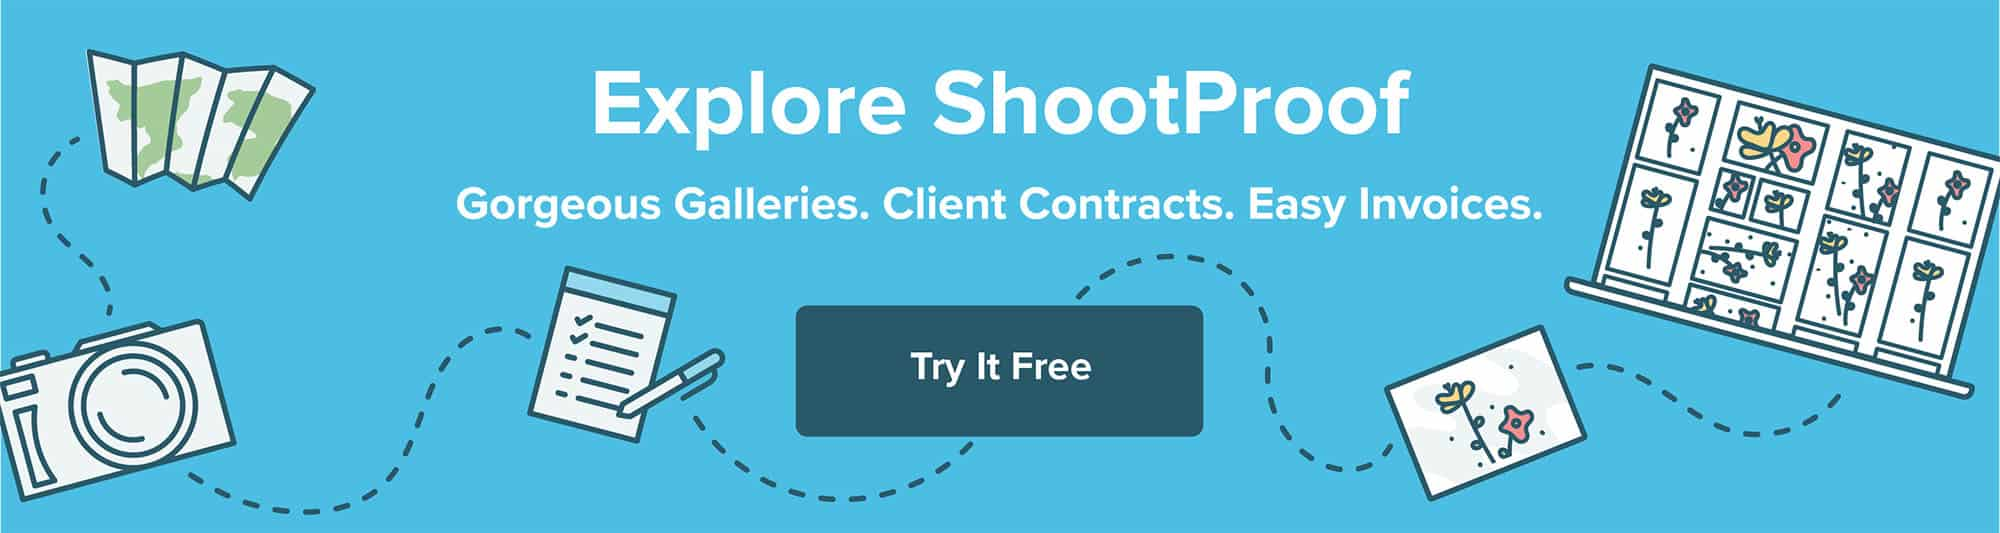 ShootProof Online Galleries. Client Contracts. Easy Invoices.